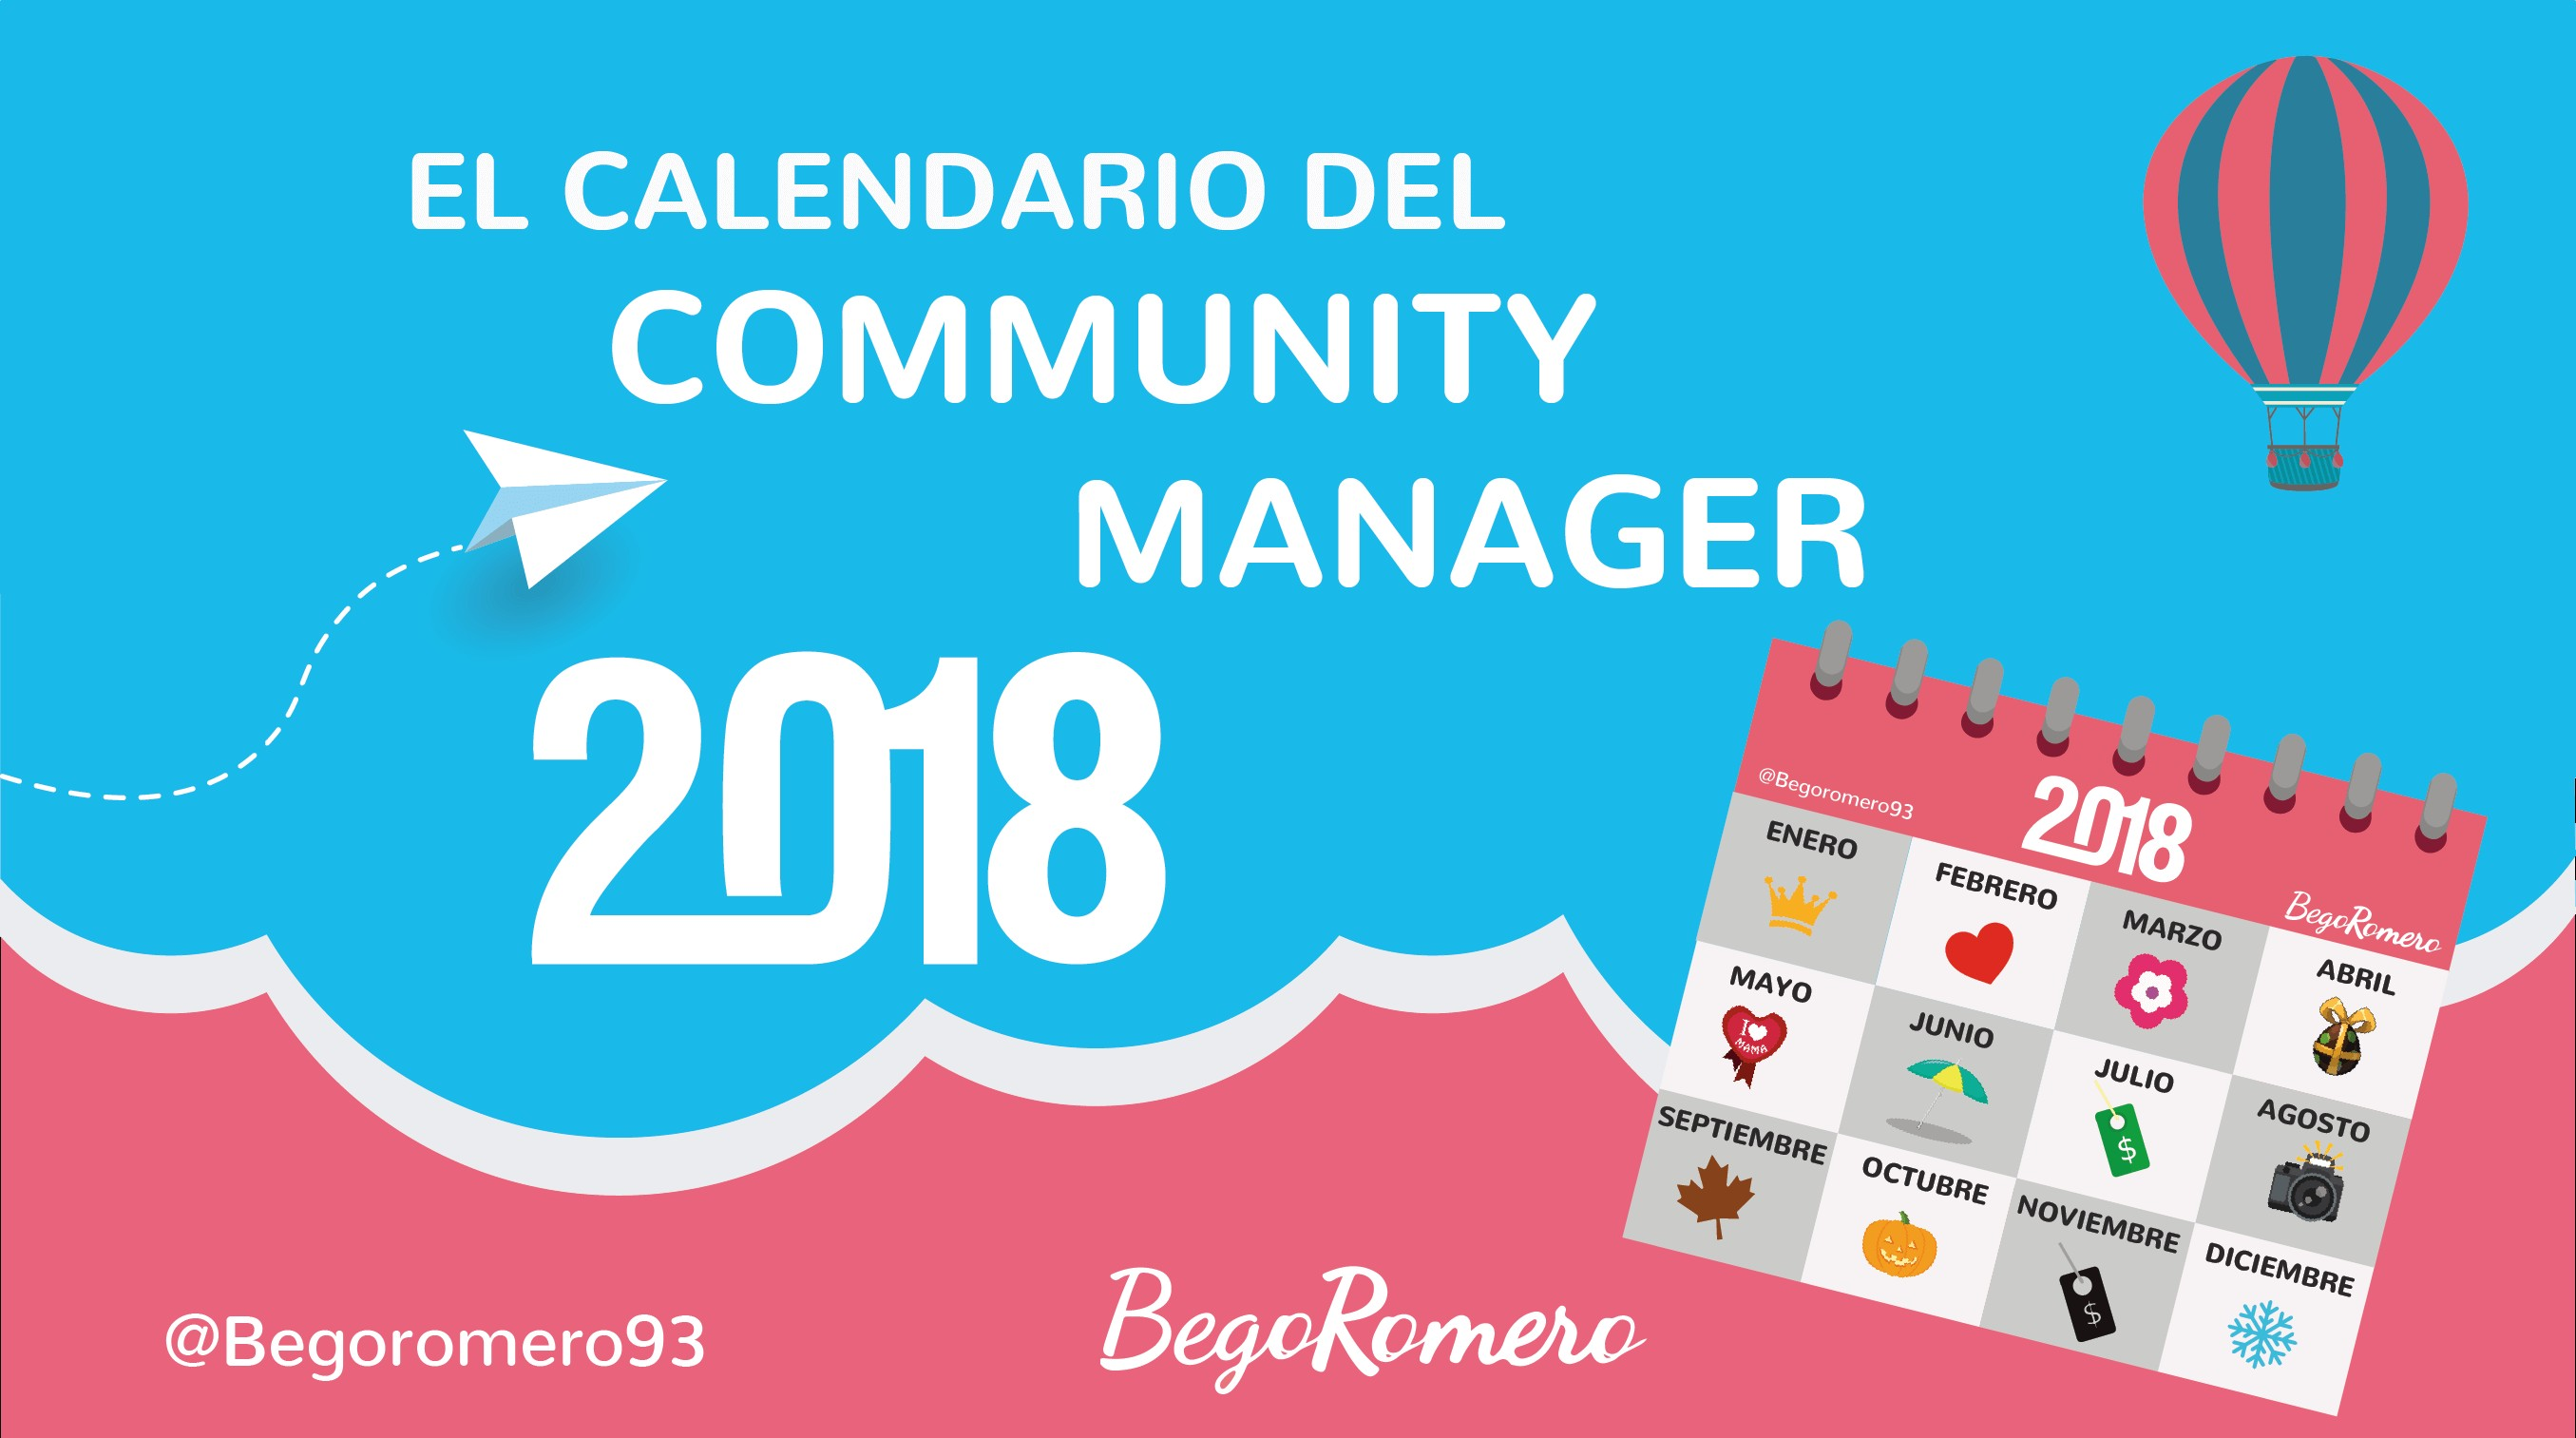 Calendario 2017 Para Imprimir Por Mes Abril Más Recientemente Liberado Calendarios Diseos Creativos Affordable Creatividad Diseo Y Of Calendario 2017 Para Imprimir Por Mes Abril Más Reciente Blend Calendario Para Escribir — Blendiberia